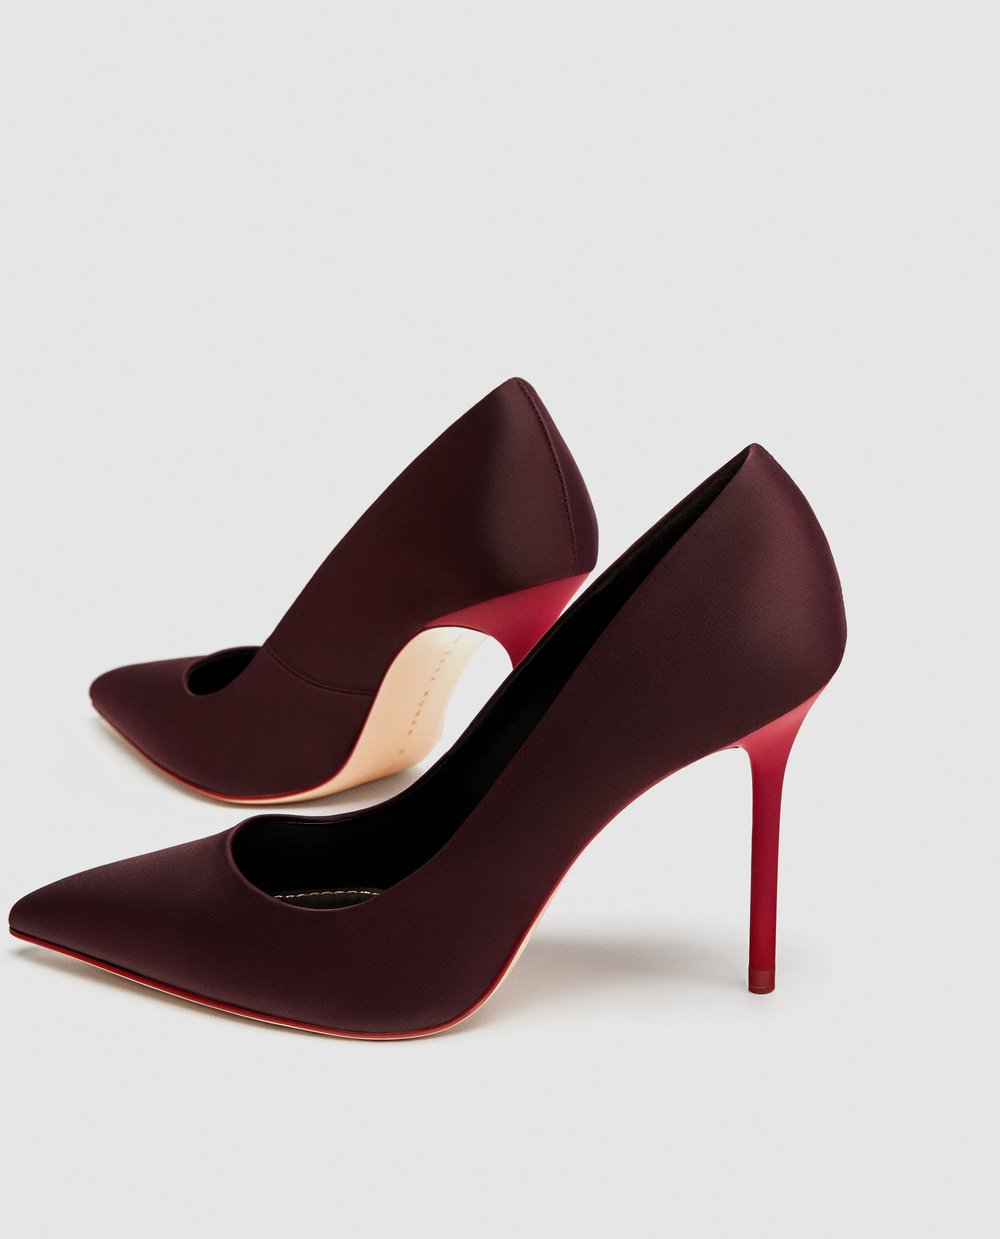 These Zara heels are in a classic, beautiful Aubergine color that will immediately add style to any simple look--and are UNDER $60?! Steal.